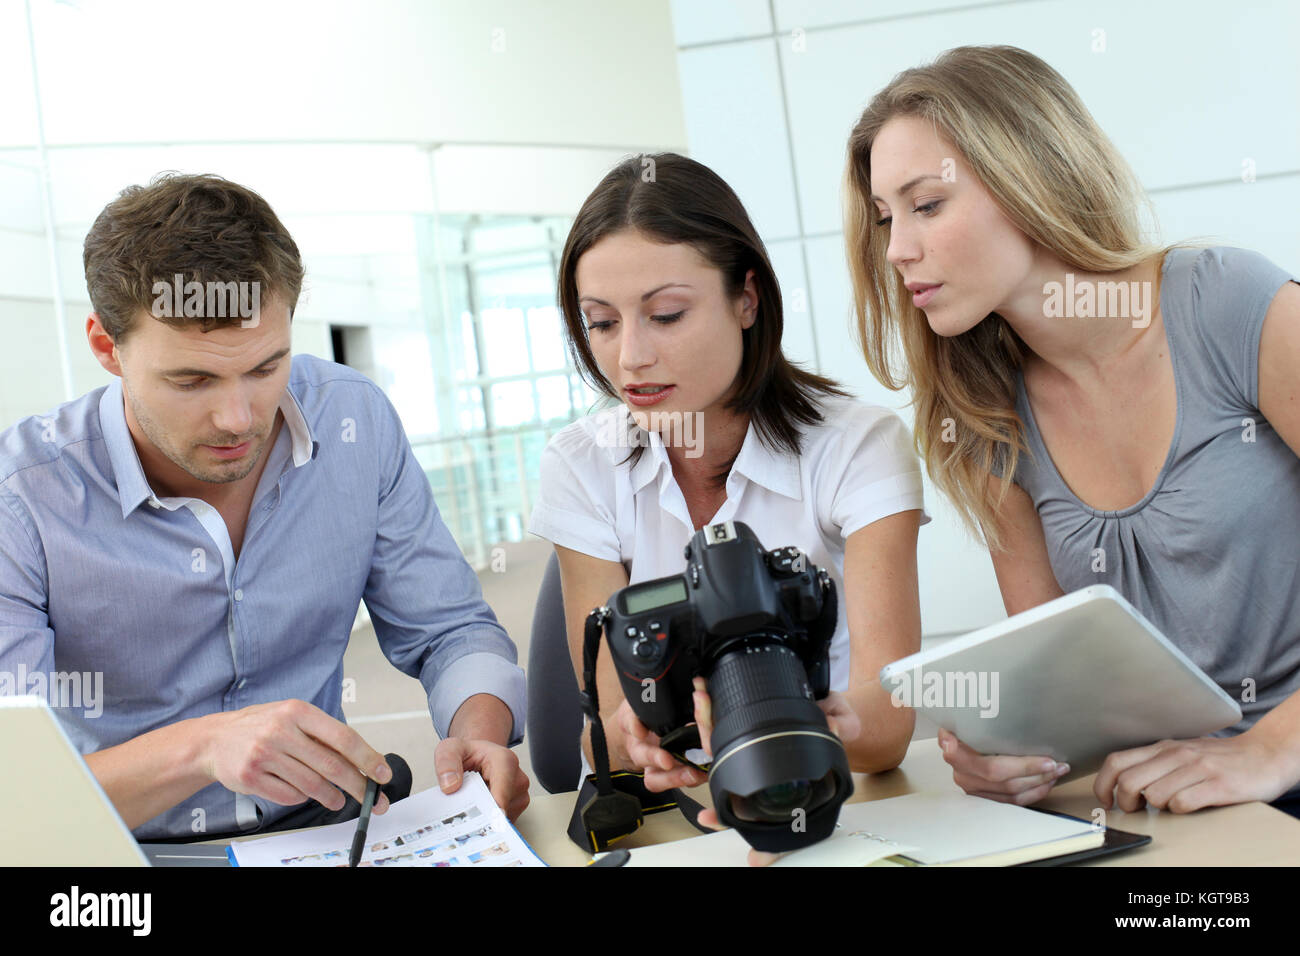 Team of photo reporters working in office - Stock Image